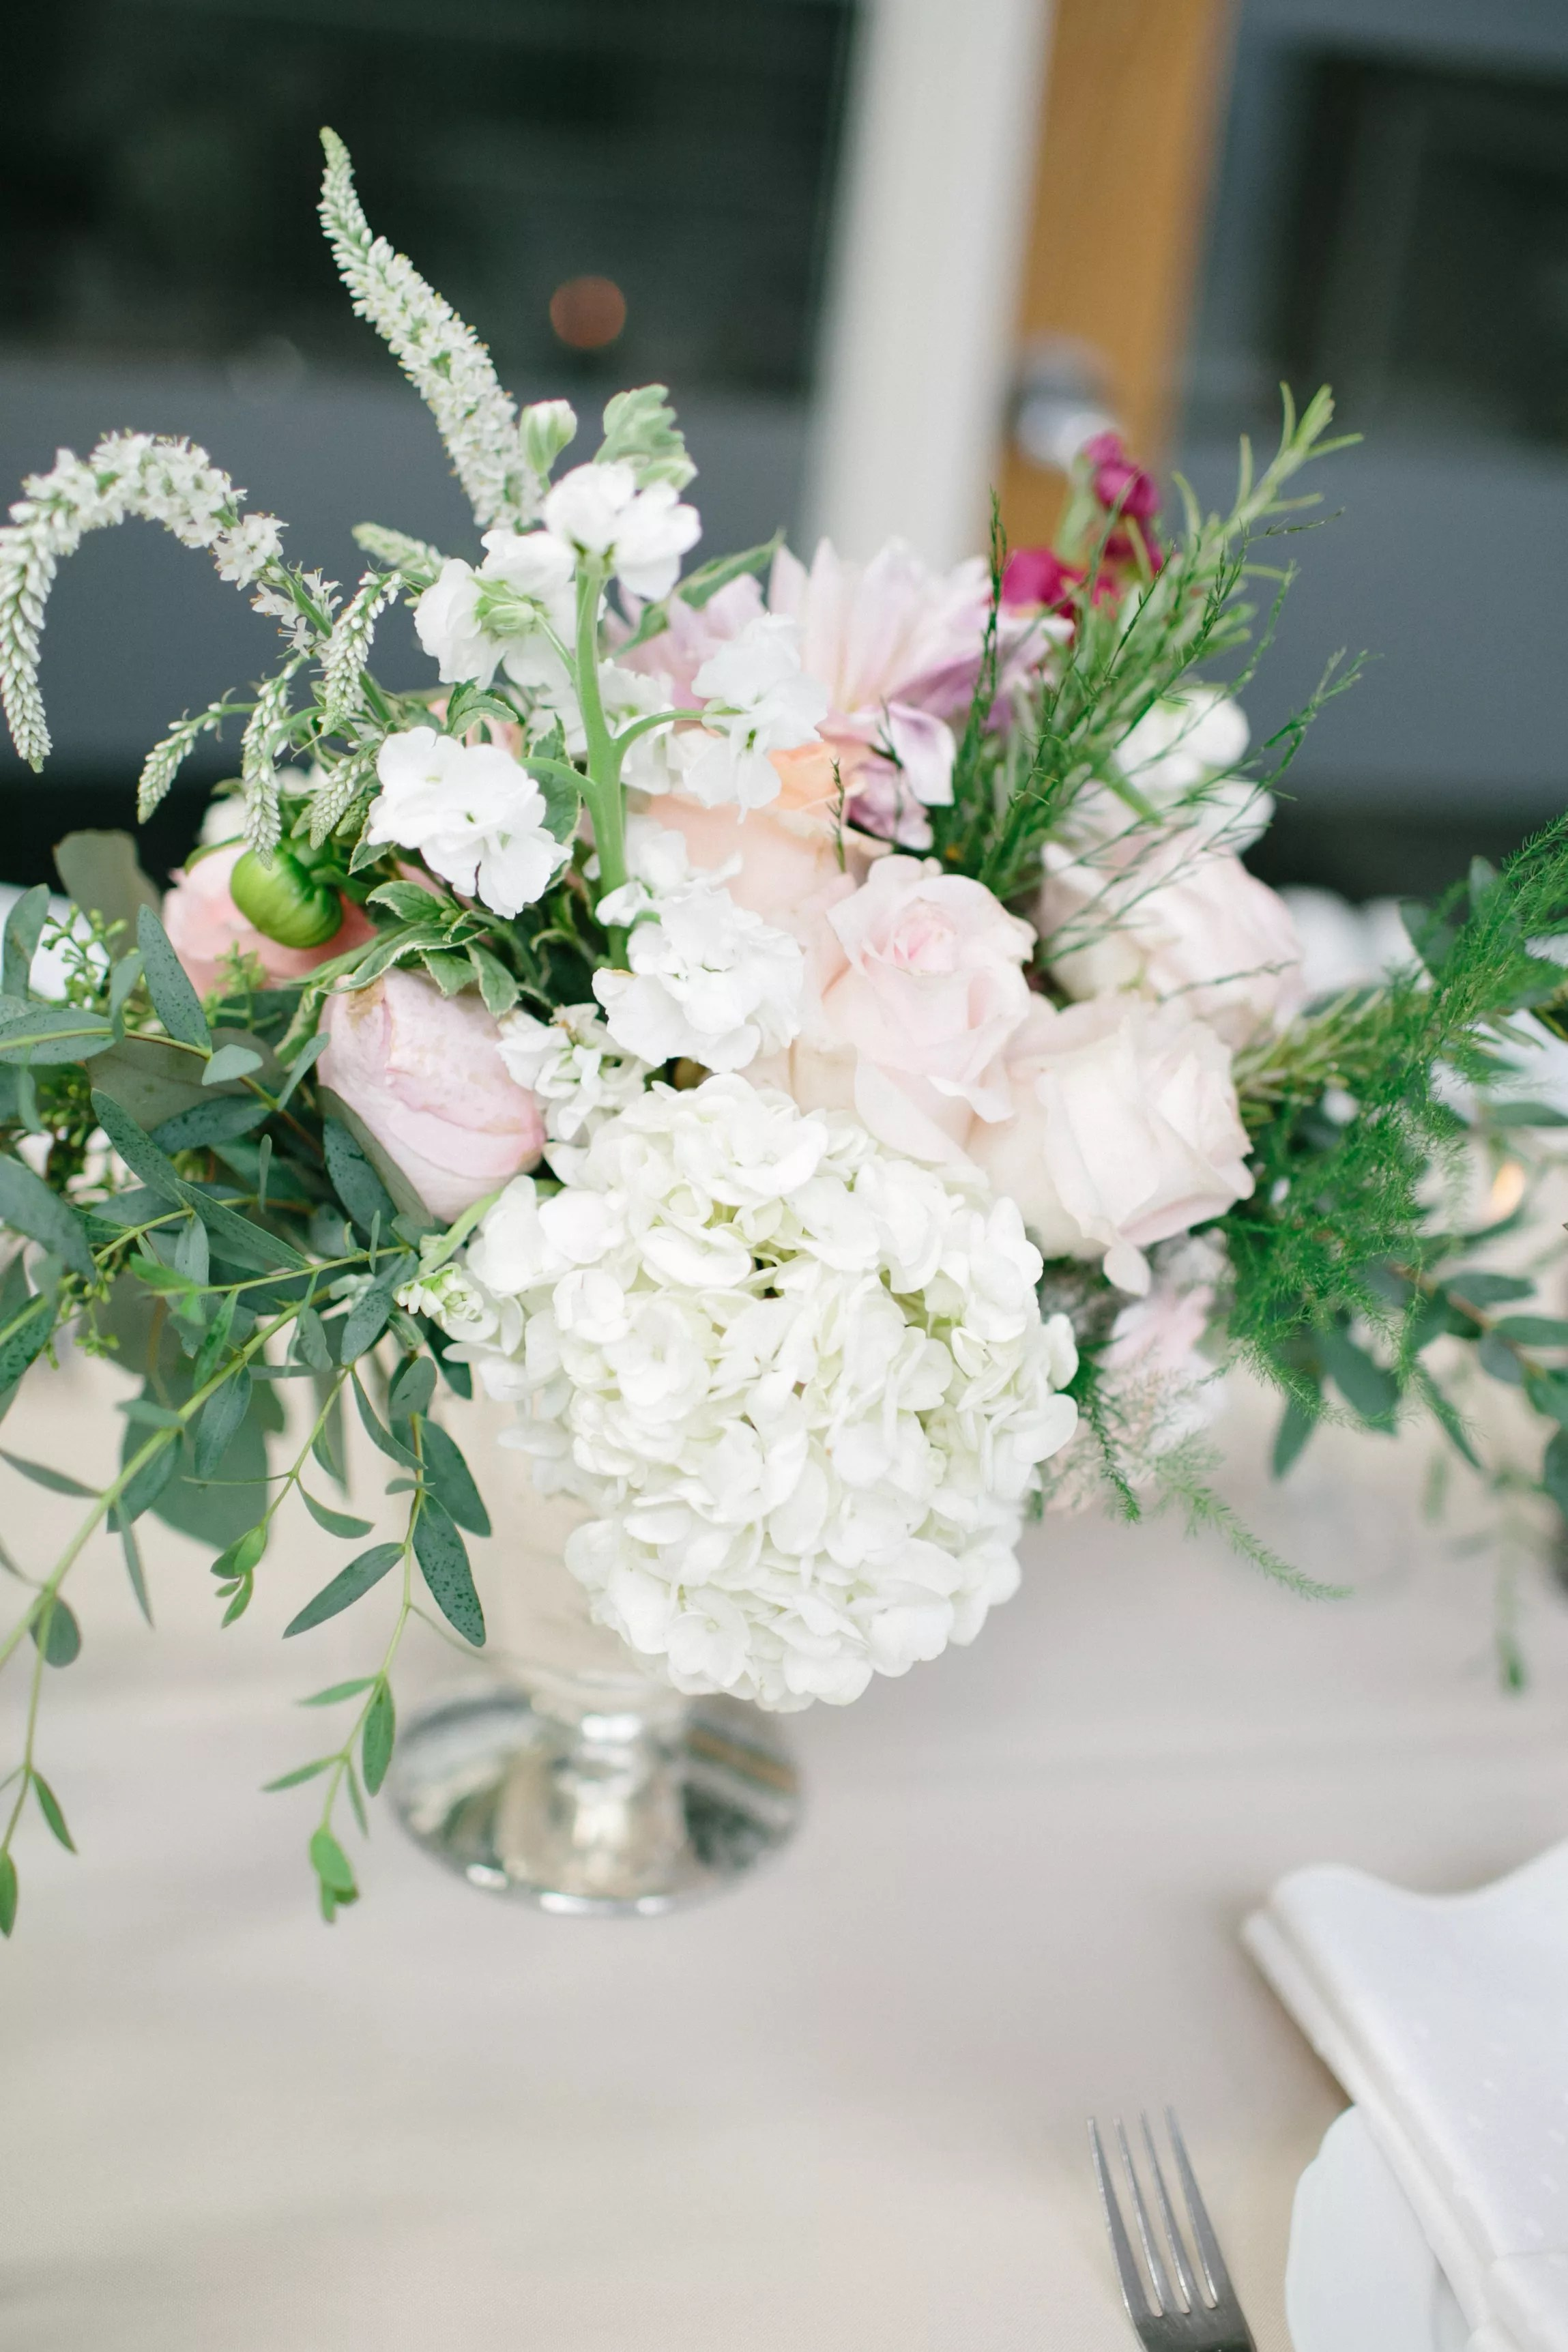 Blush Rose And White Veronica Centerpieces